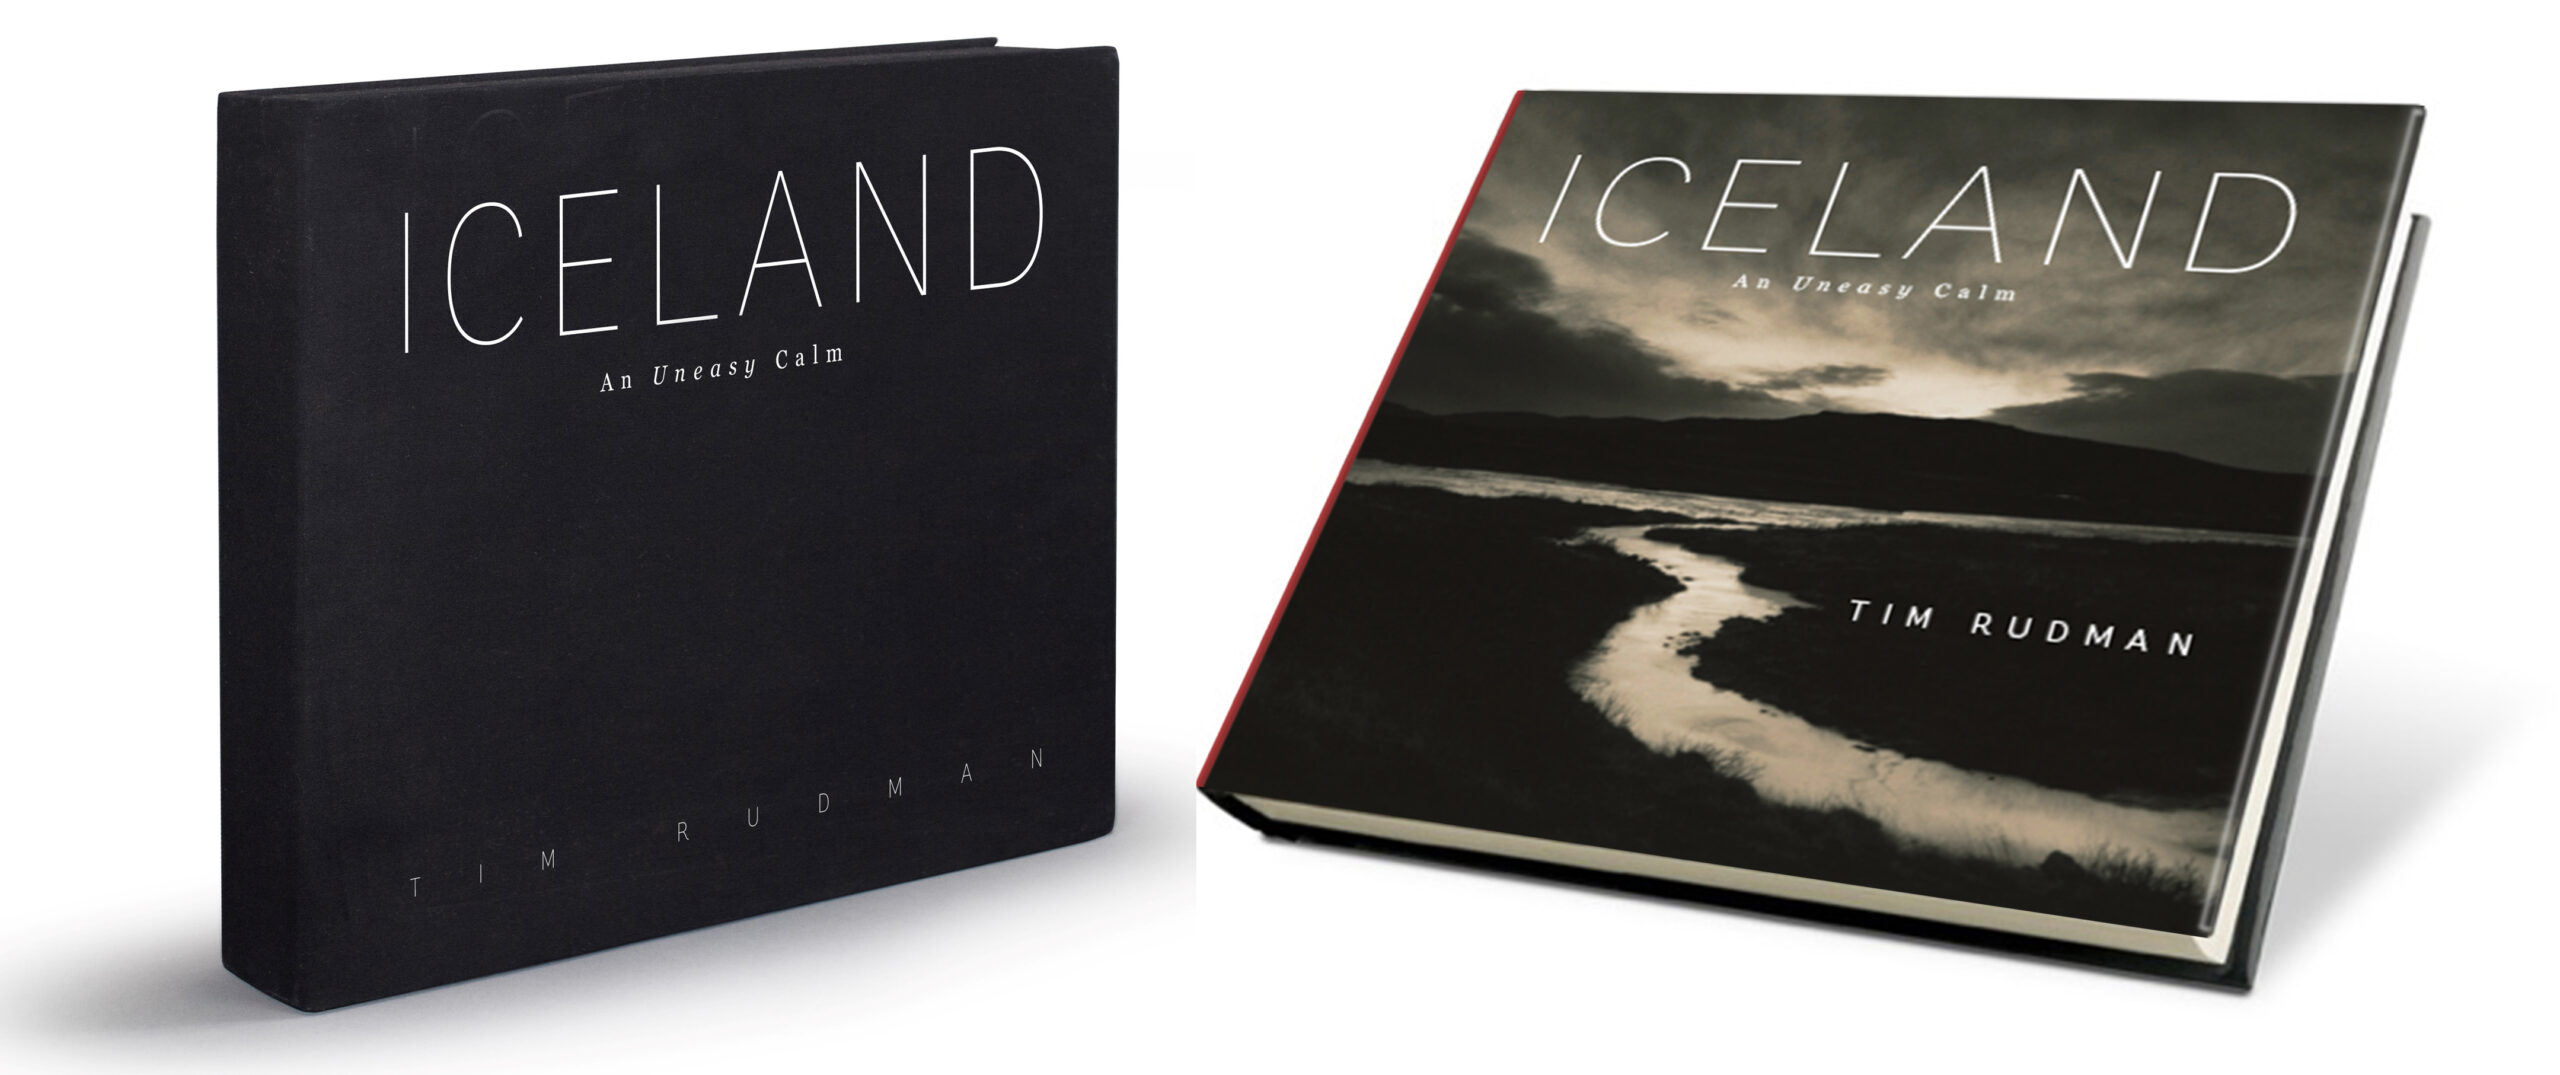 Tim Rudman's 'Iceland, An Uneasy Calm' standard boxed edition